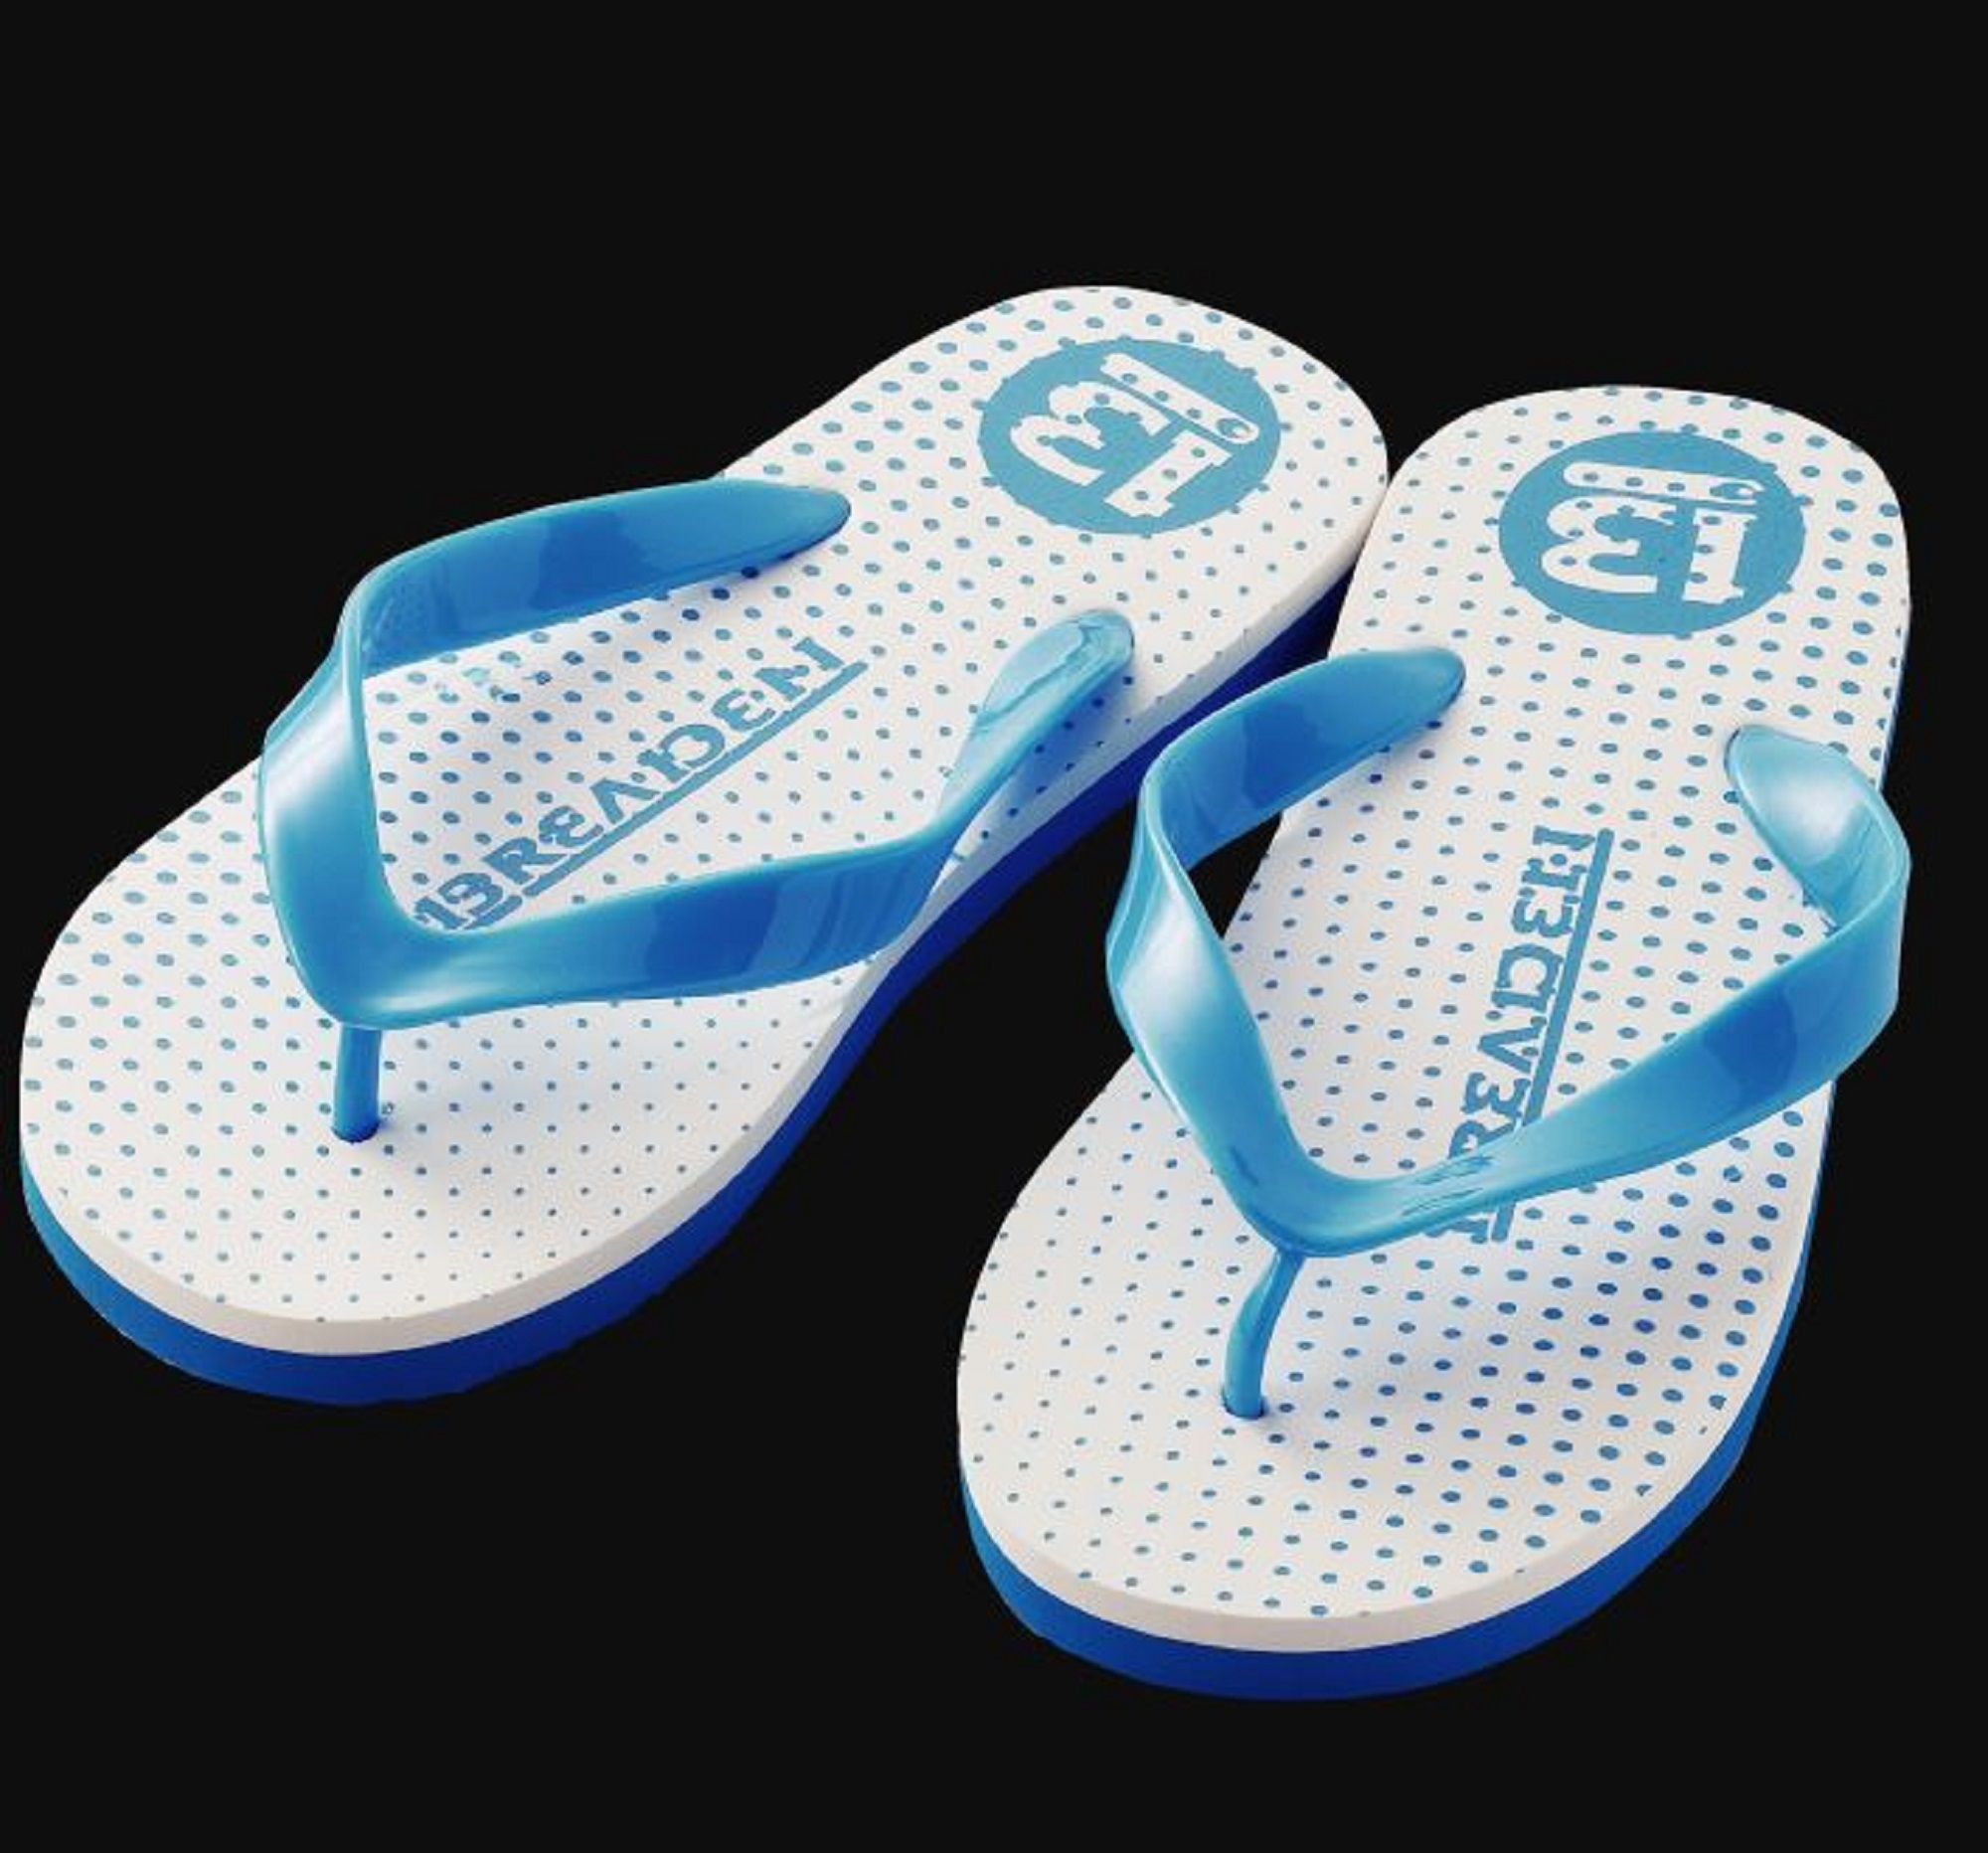 Breaden Beach Sandals Size 27cm 03 (7348)